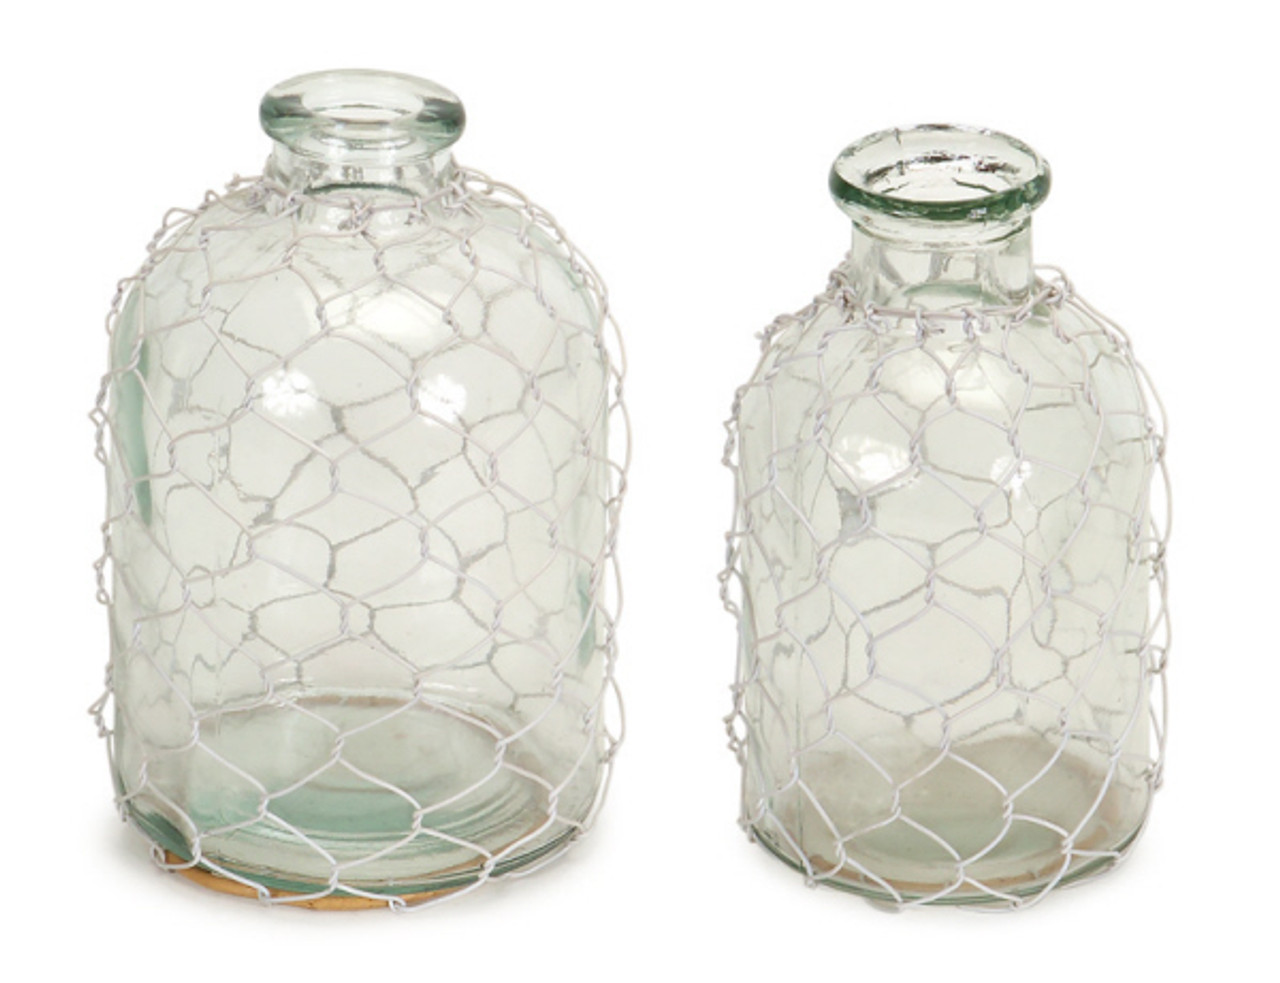 Set of 2 Clear Gl with Wire Netting Decorative Bottle Vases 7 ... Decorative Clear Vases on decorative big vase, decorative white vase, decorative large vase, decorative metal vase, decorative dark green vase, decorative blue vase, decorative black vase, decorative clear glass,